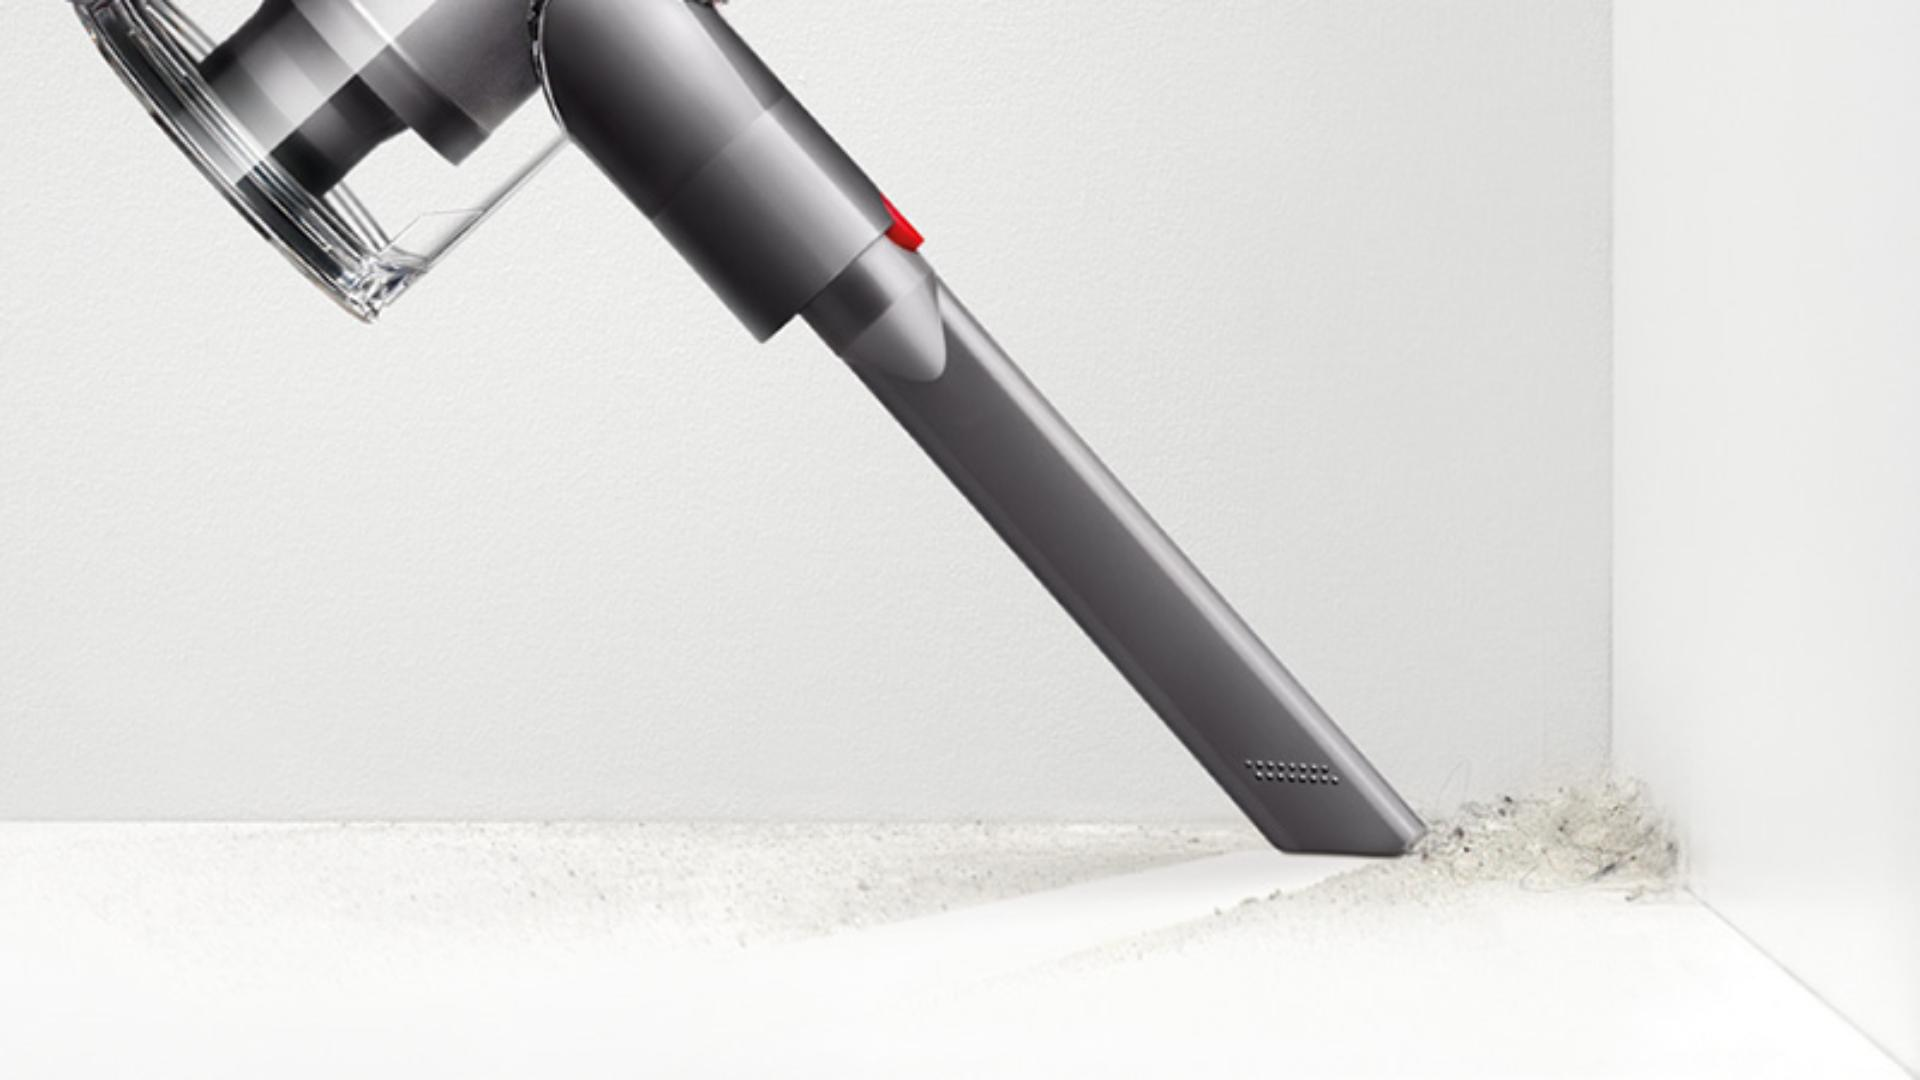 Designed for precise cleaning around edges and narrow gaps.